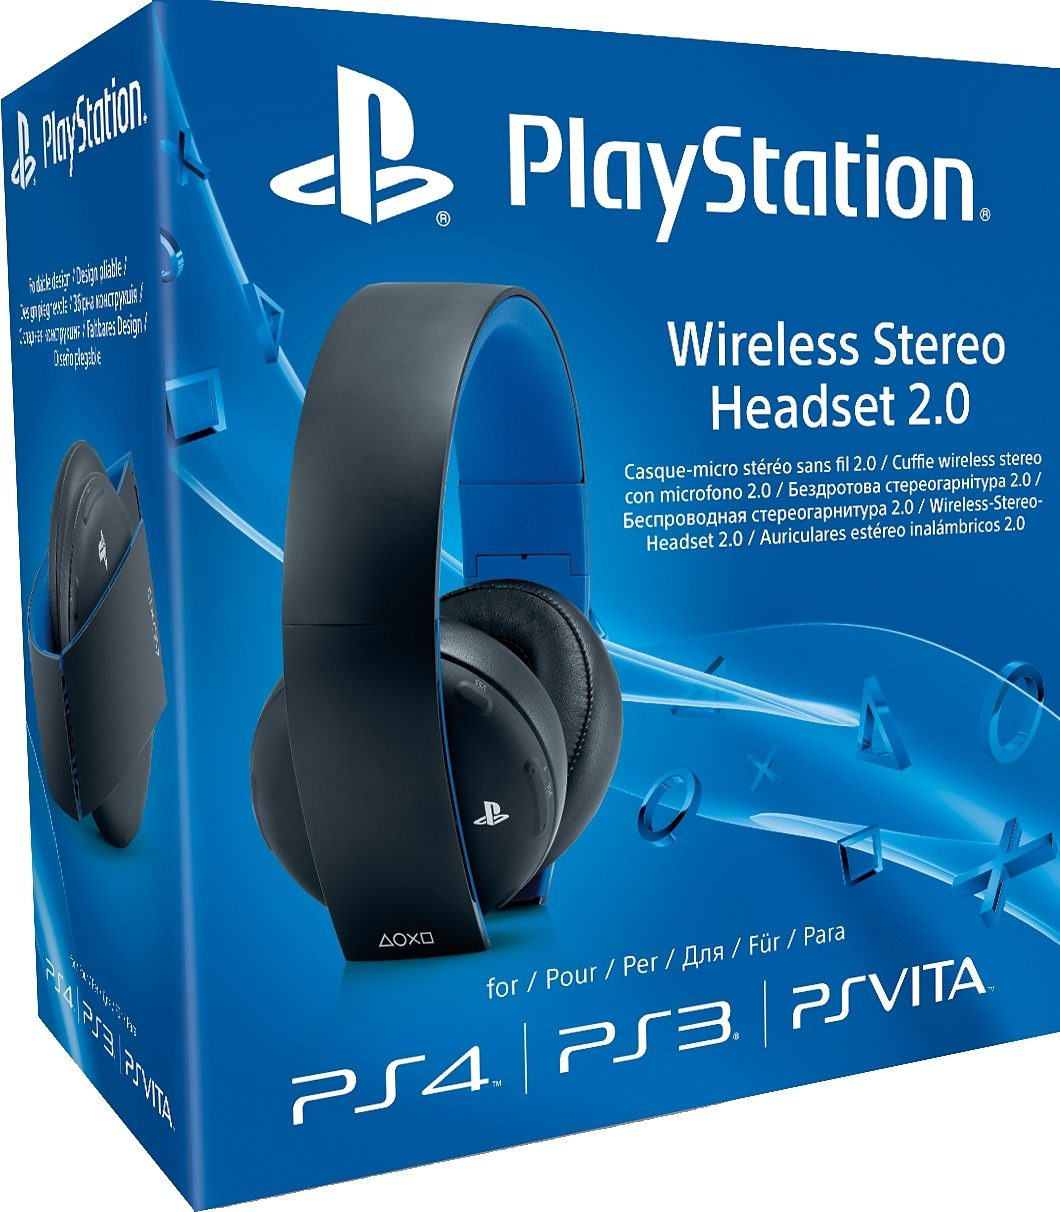 PS4 Wireless-Stereo-Headset 2.0